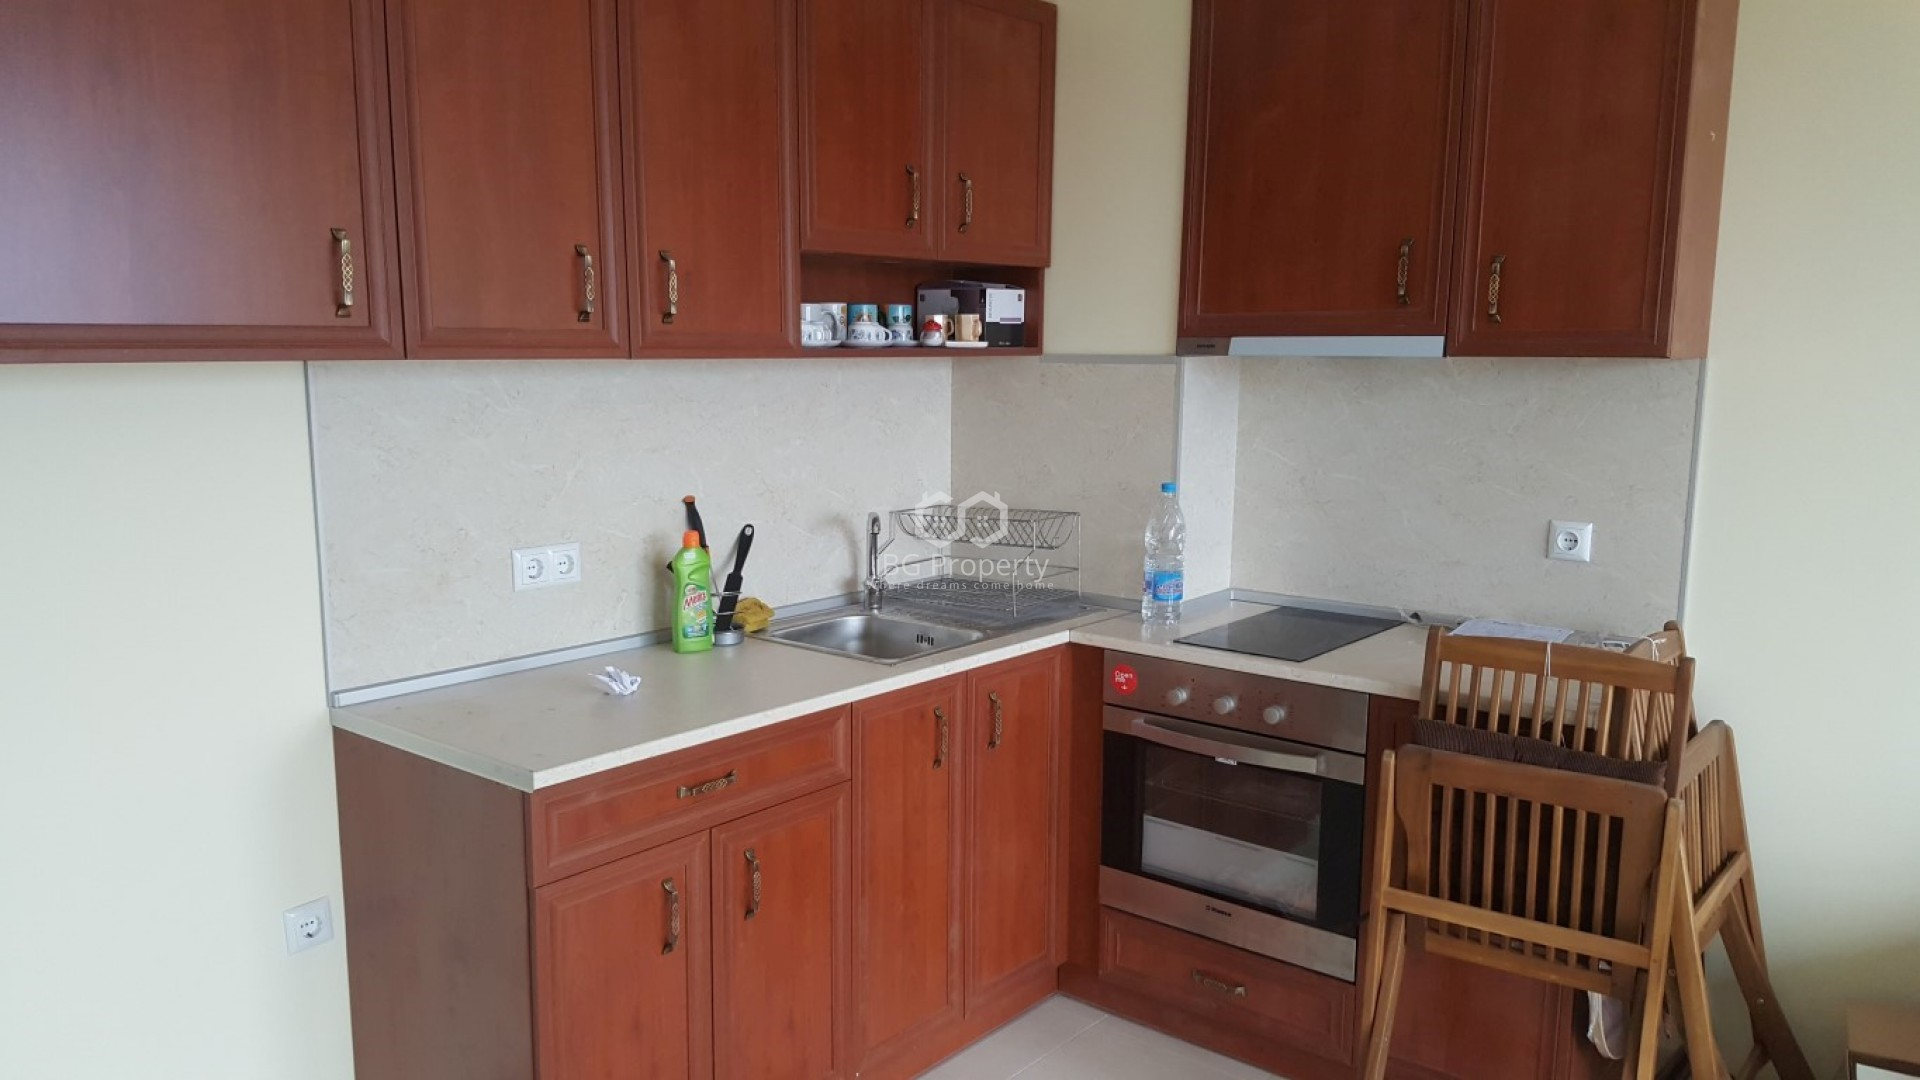 One bedroom apartment Vinitsa Varna  61,70  m2